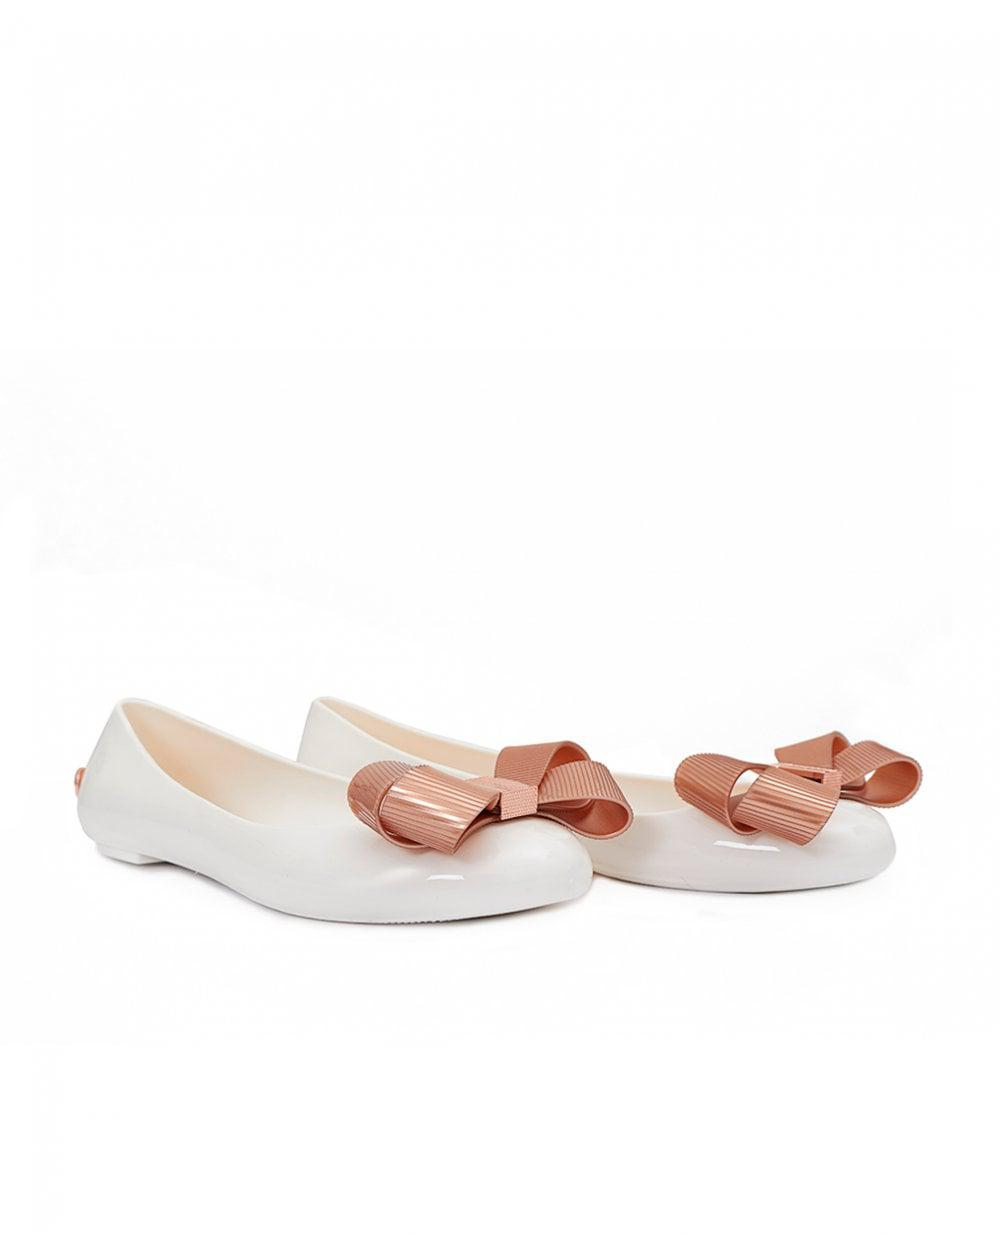 e35137c74 Ted Baker. Women s White Bow Front Jelly Court Shoes